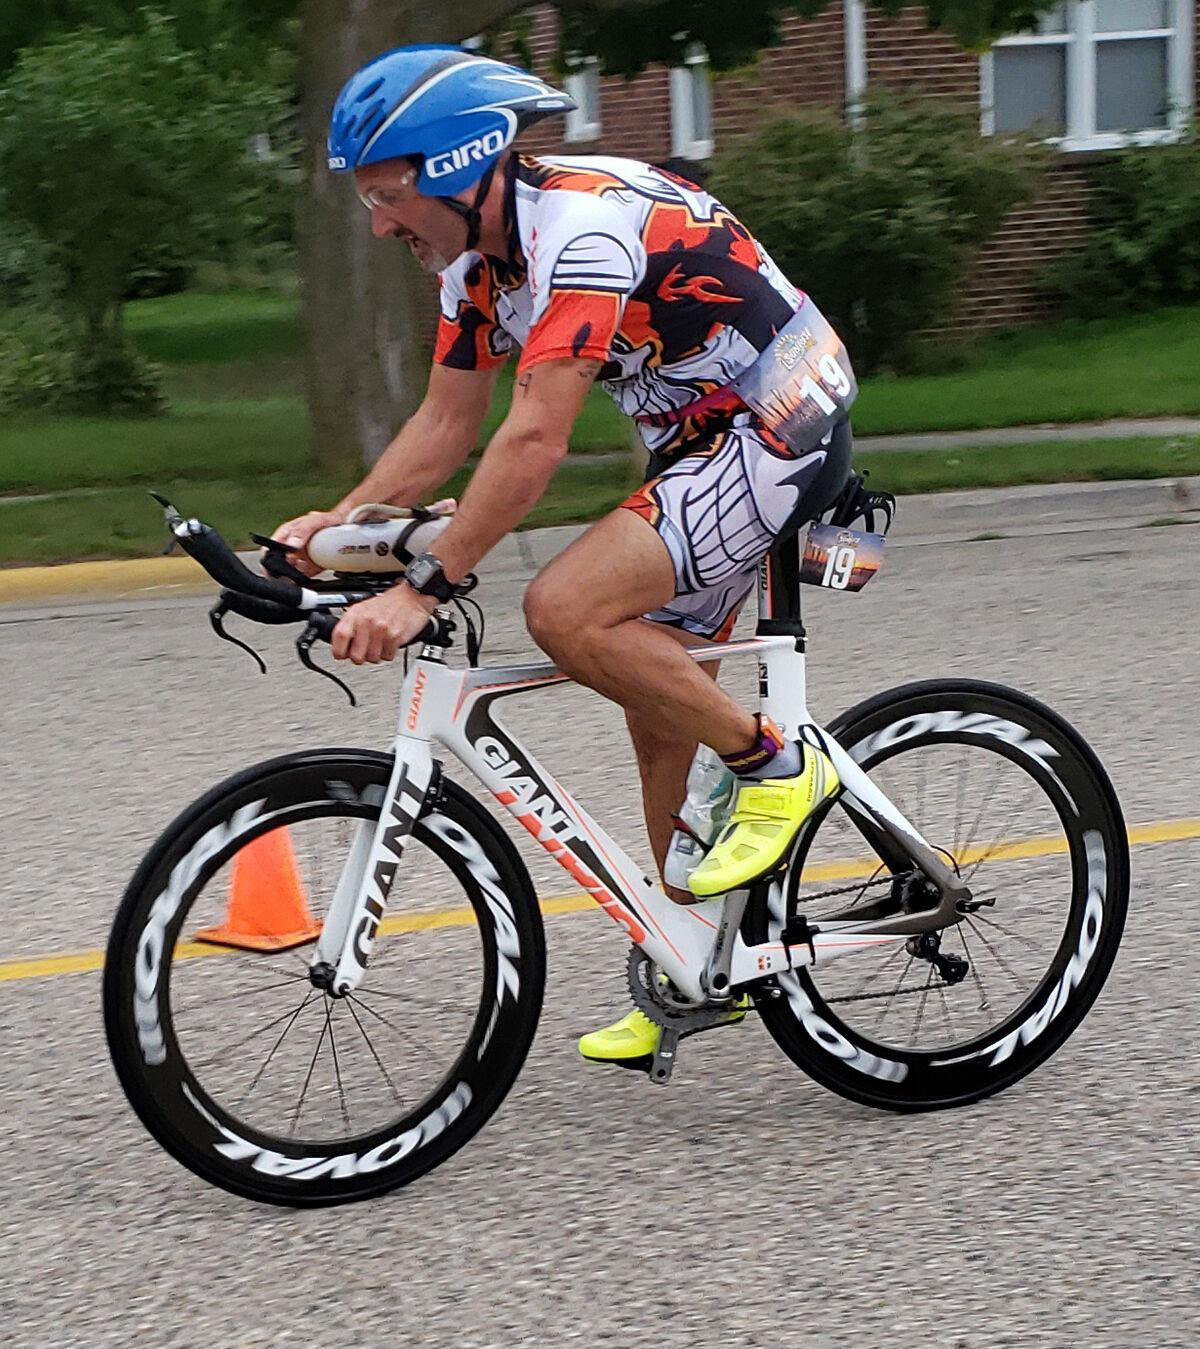 triathlonbike-color.jpg